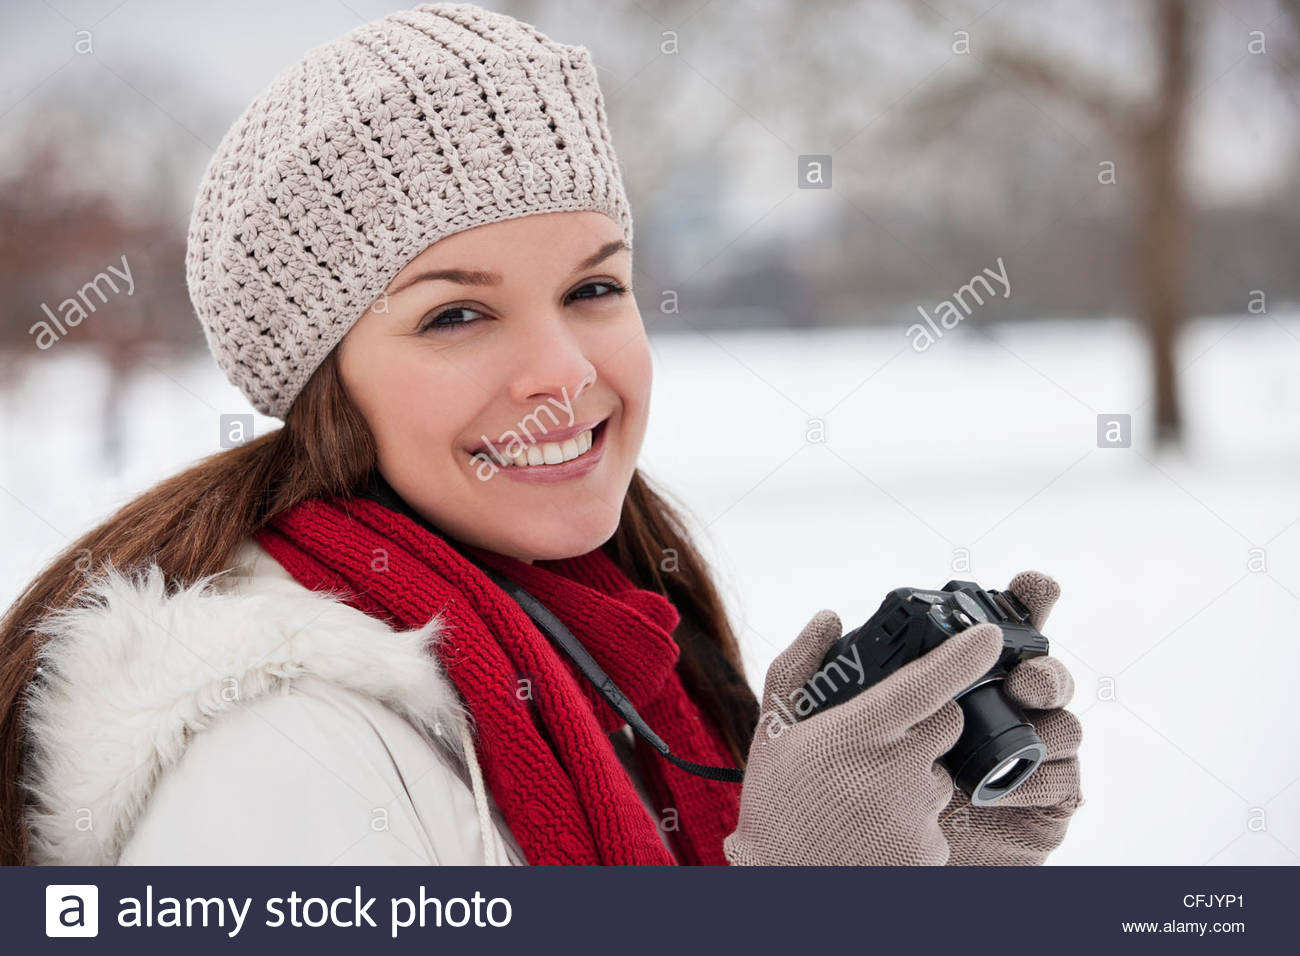 A young woman standing in the snow, holding a camera - Stock Image